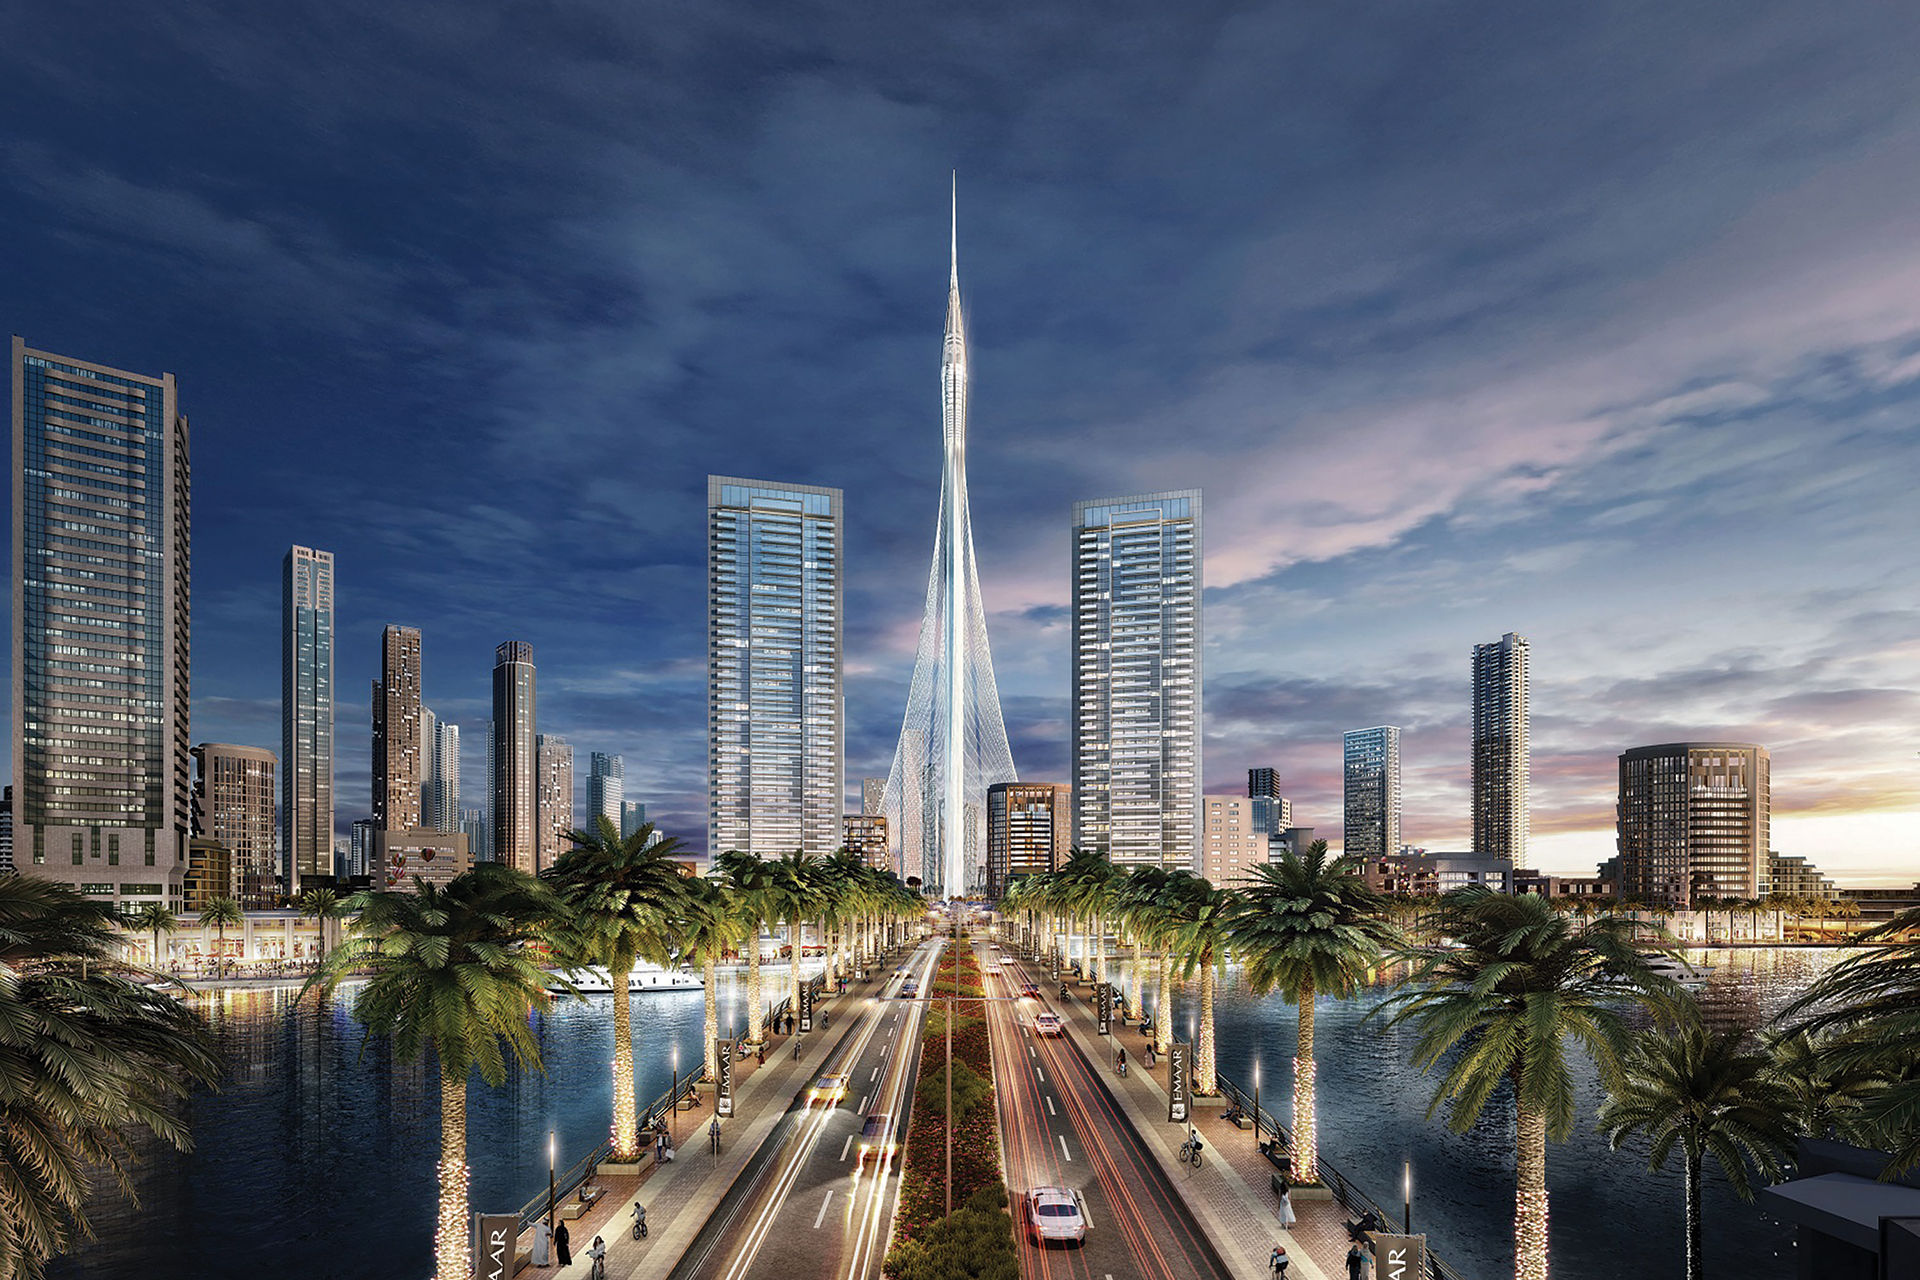 The World's Next Tallest Tower